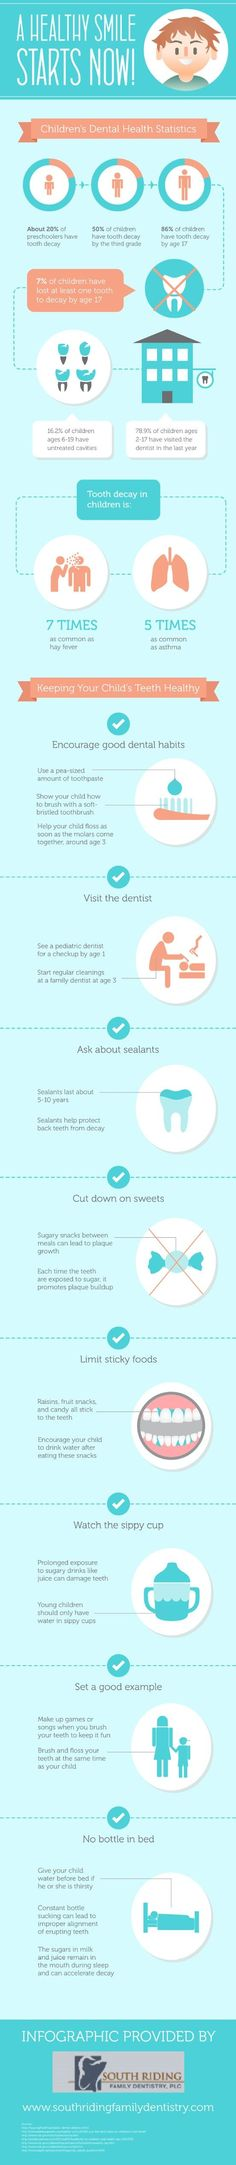 Sealants are great options for maintaining children's oral health. Dental sealants protect the back teeth from decay and last between 5 and 10 years. www.zdental.com